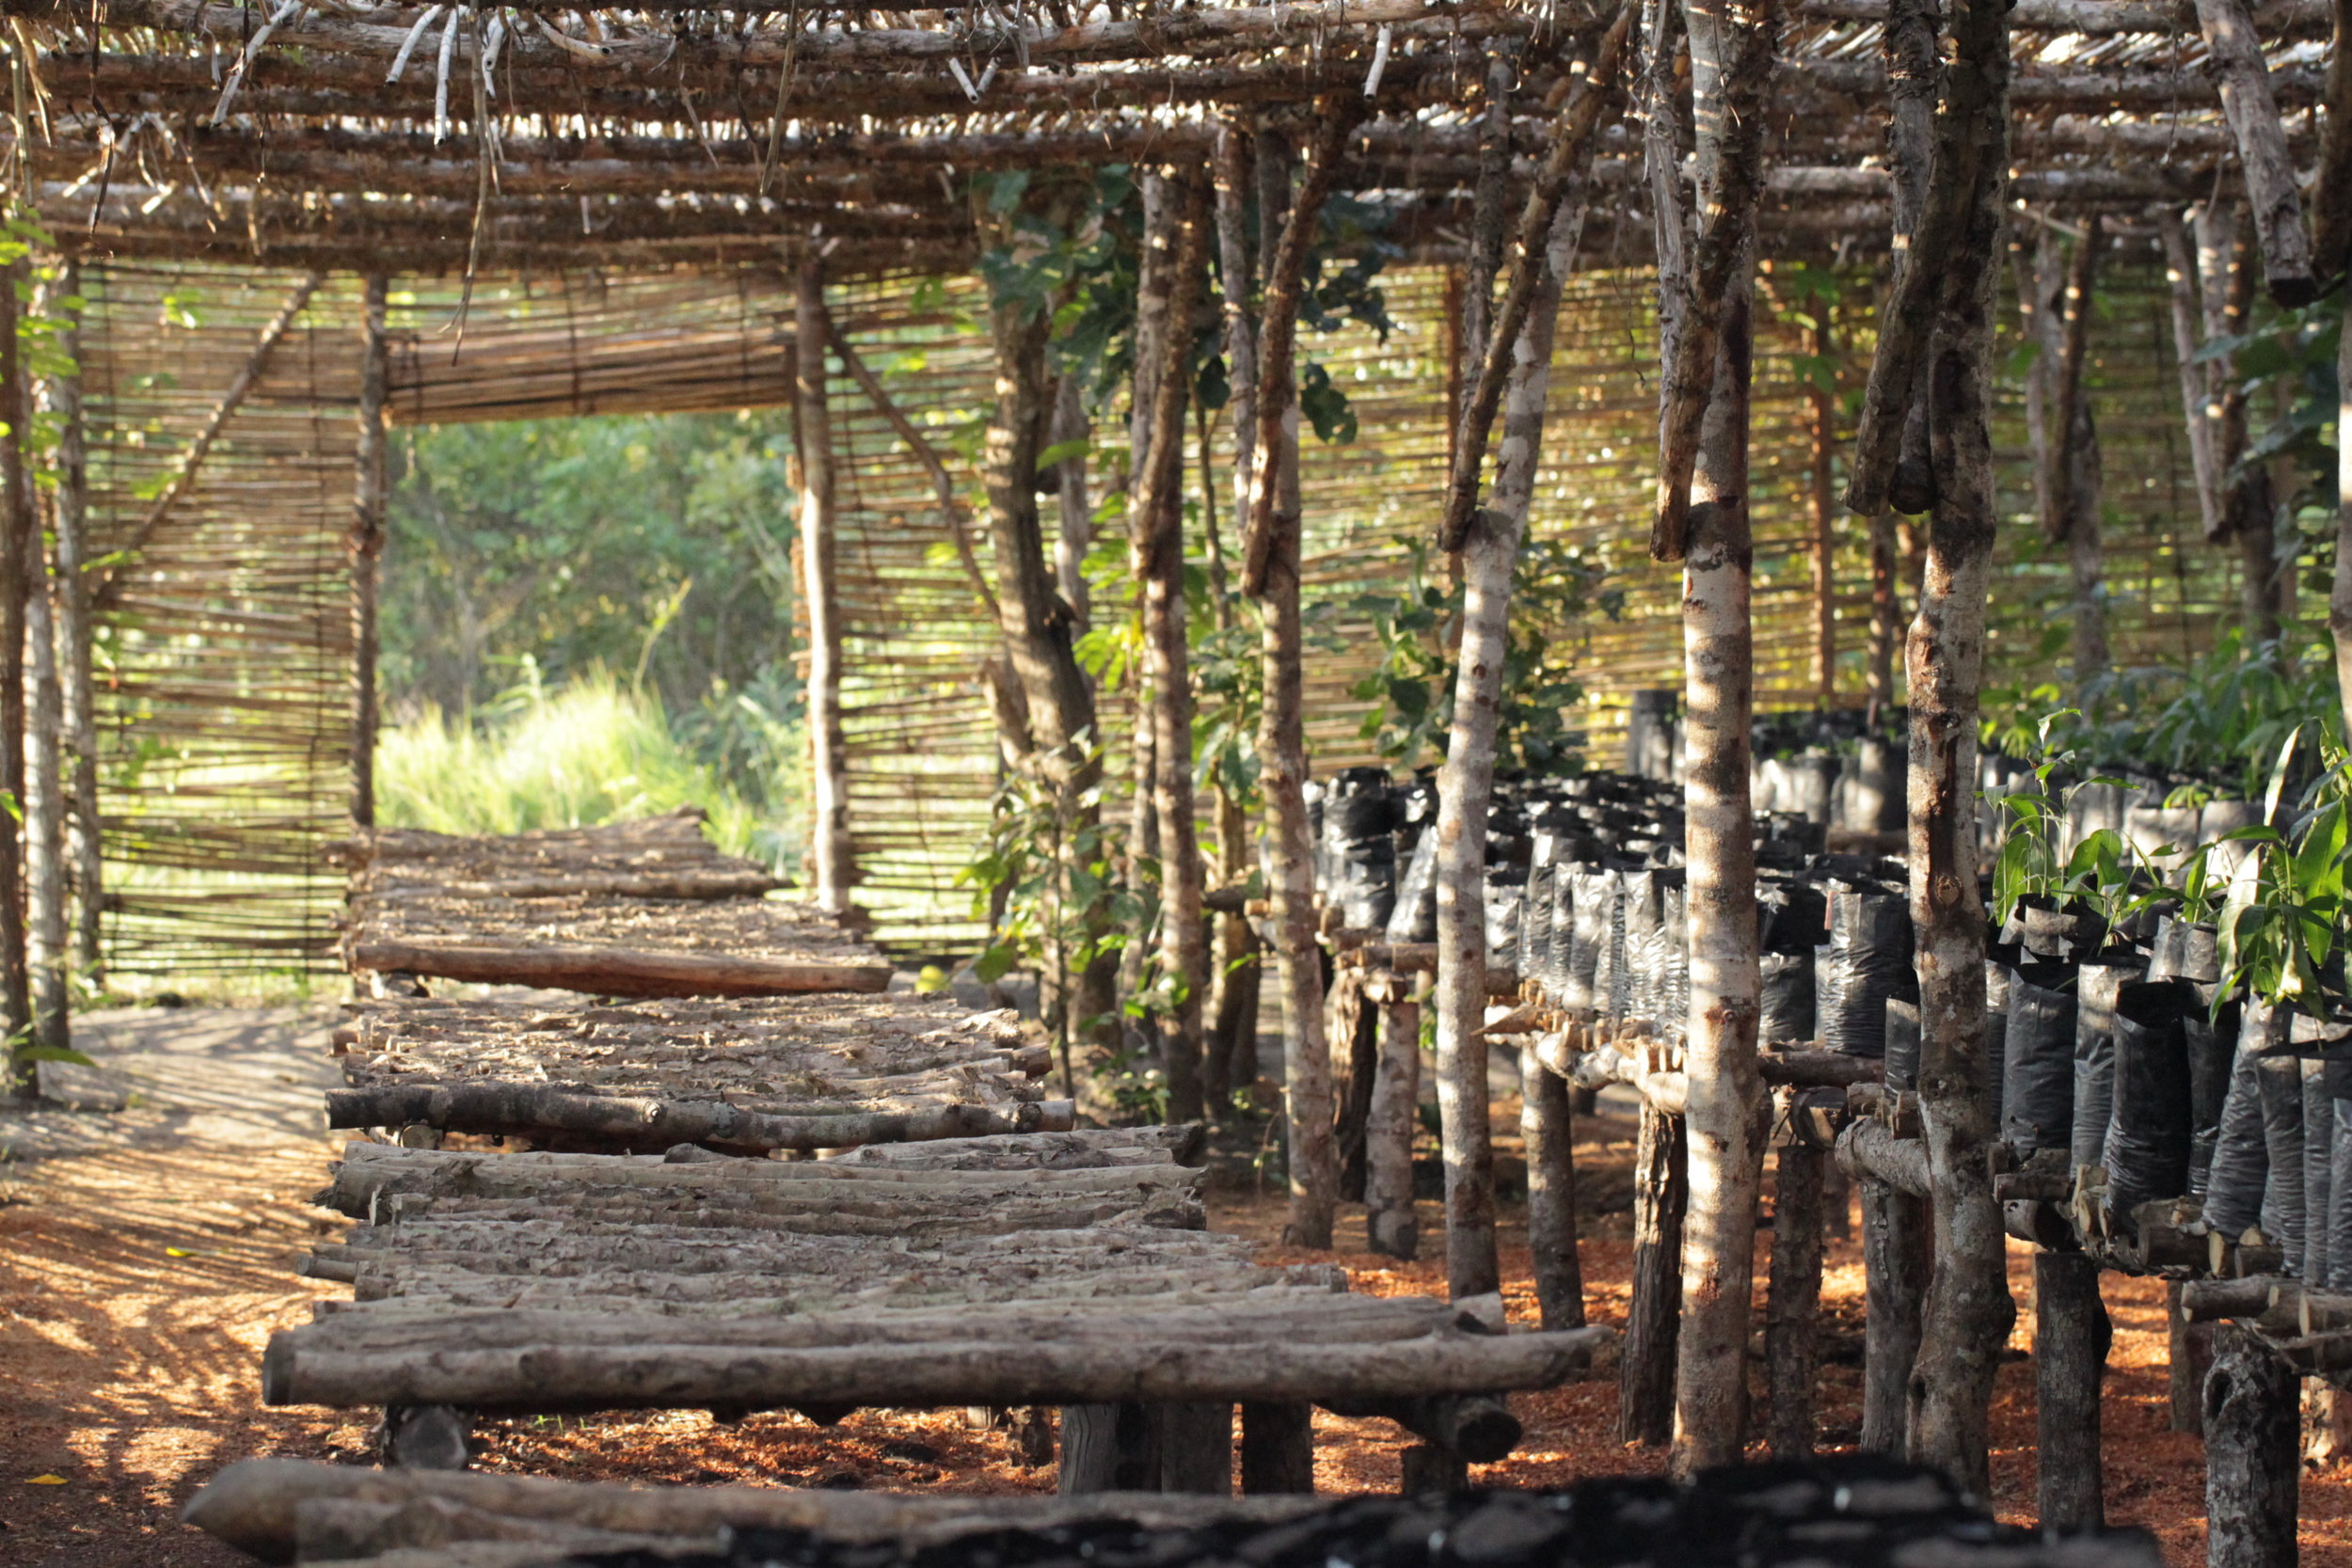 One of the tree nurseries that had been at Mezimbite Forest Centre prior to Hurricane Idai. These nurseries housed native trees that would be replanted throughout the Sofala Province of Mozambique.